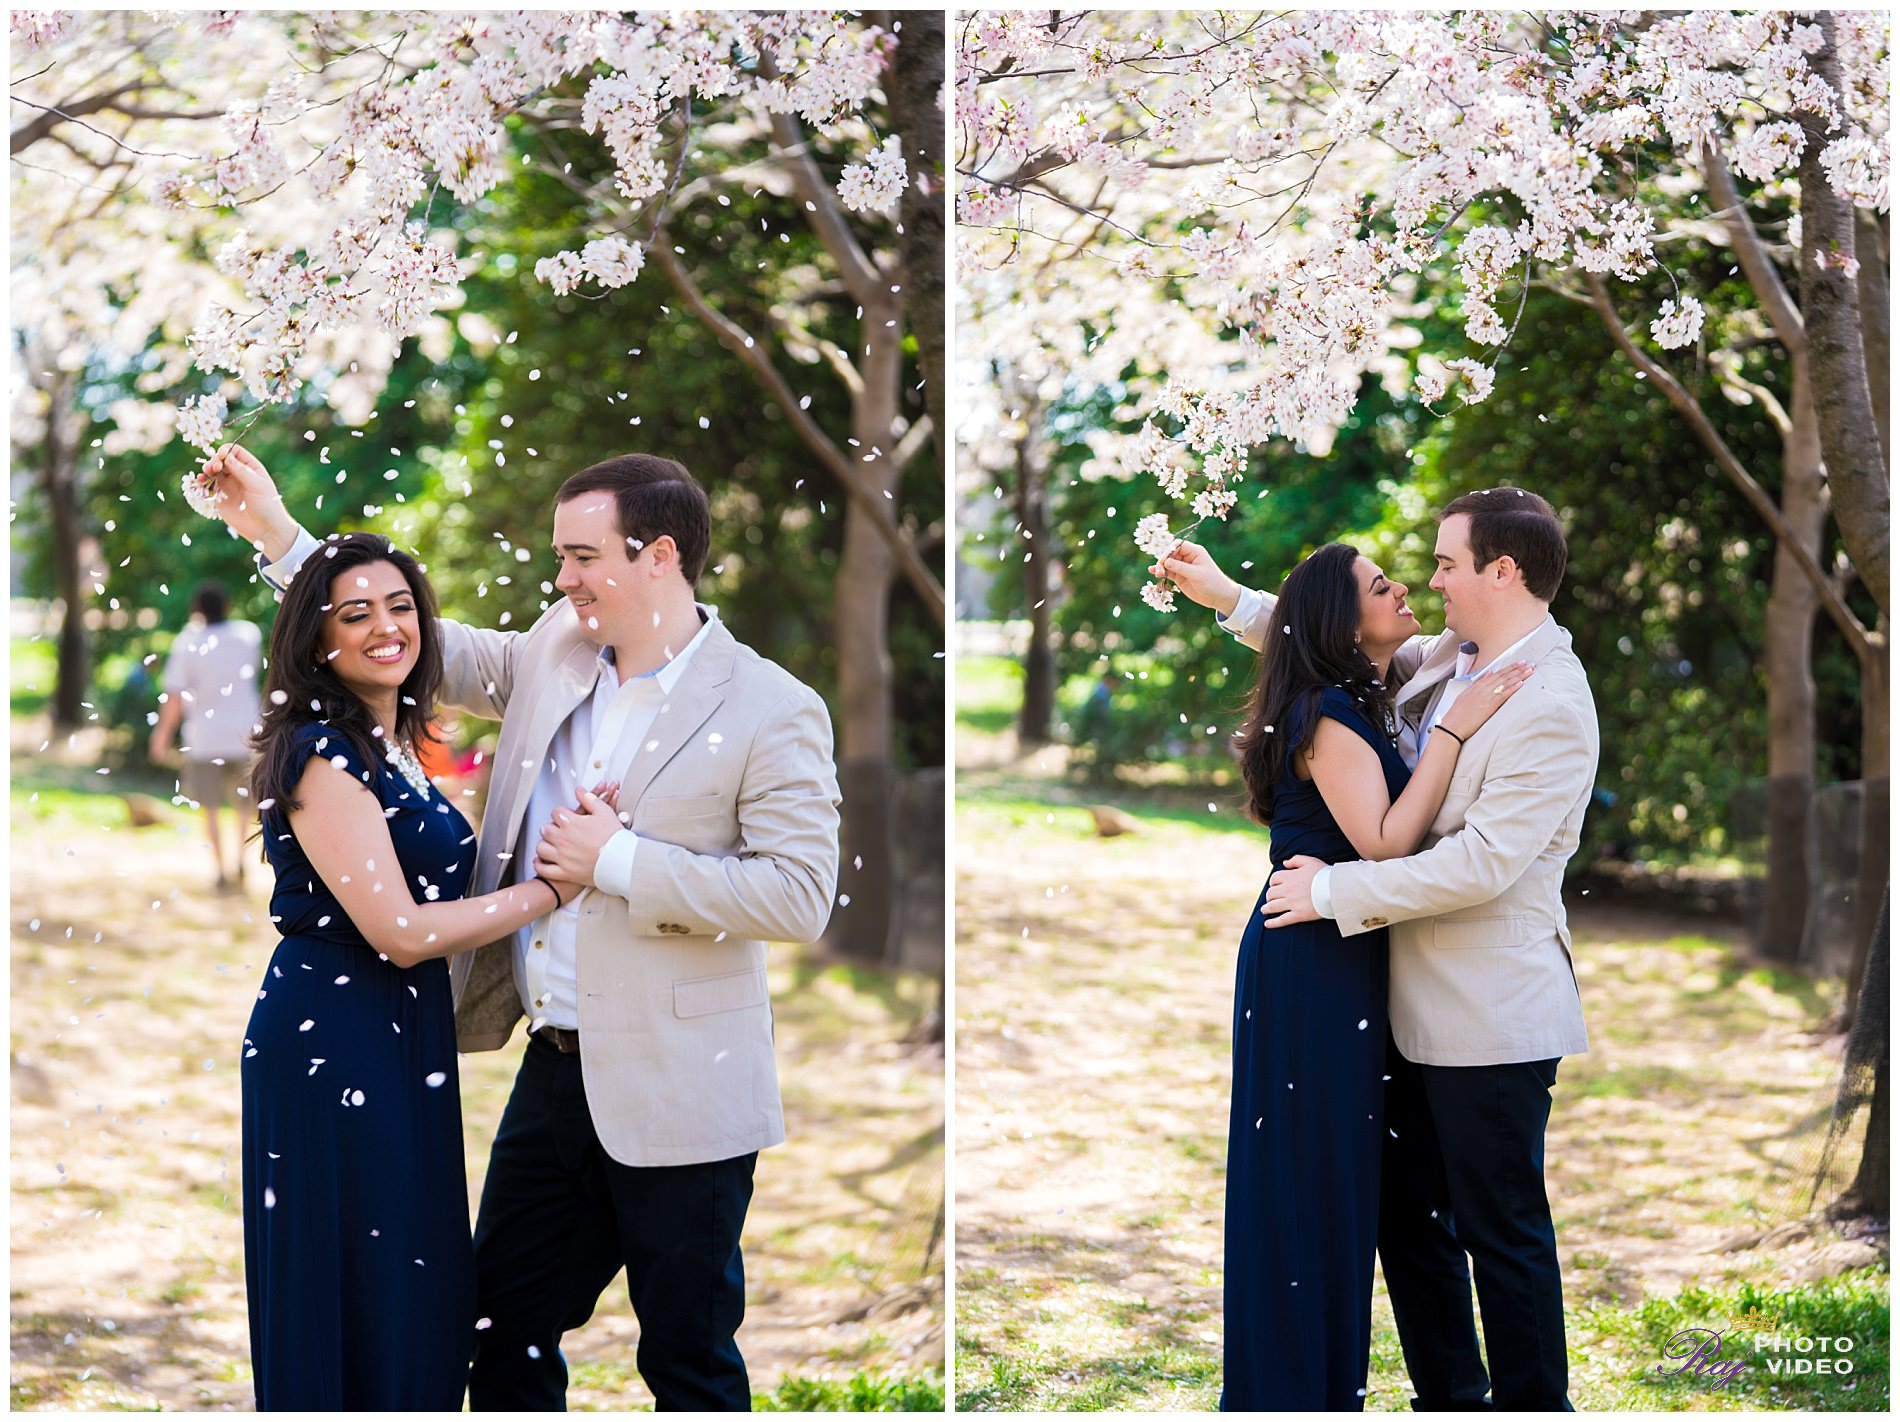 National-Cherry-Blossom-Festival-Washington-DC-Engagement-Shoot-Aditi-Peter-13.jpg